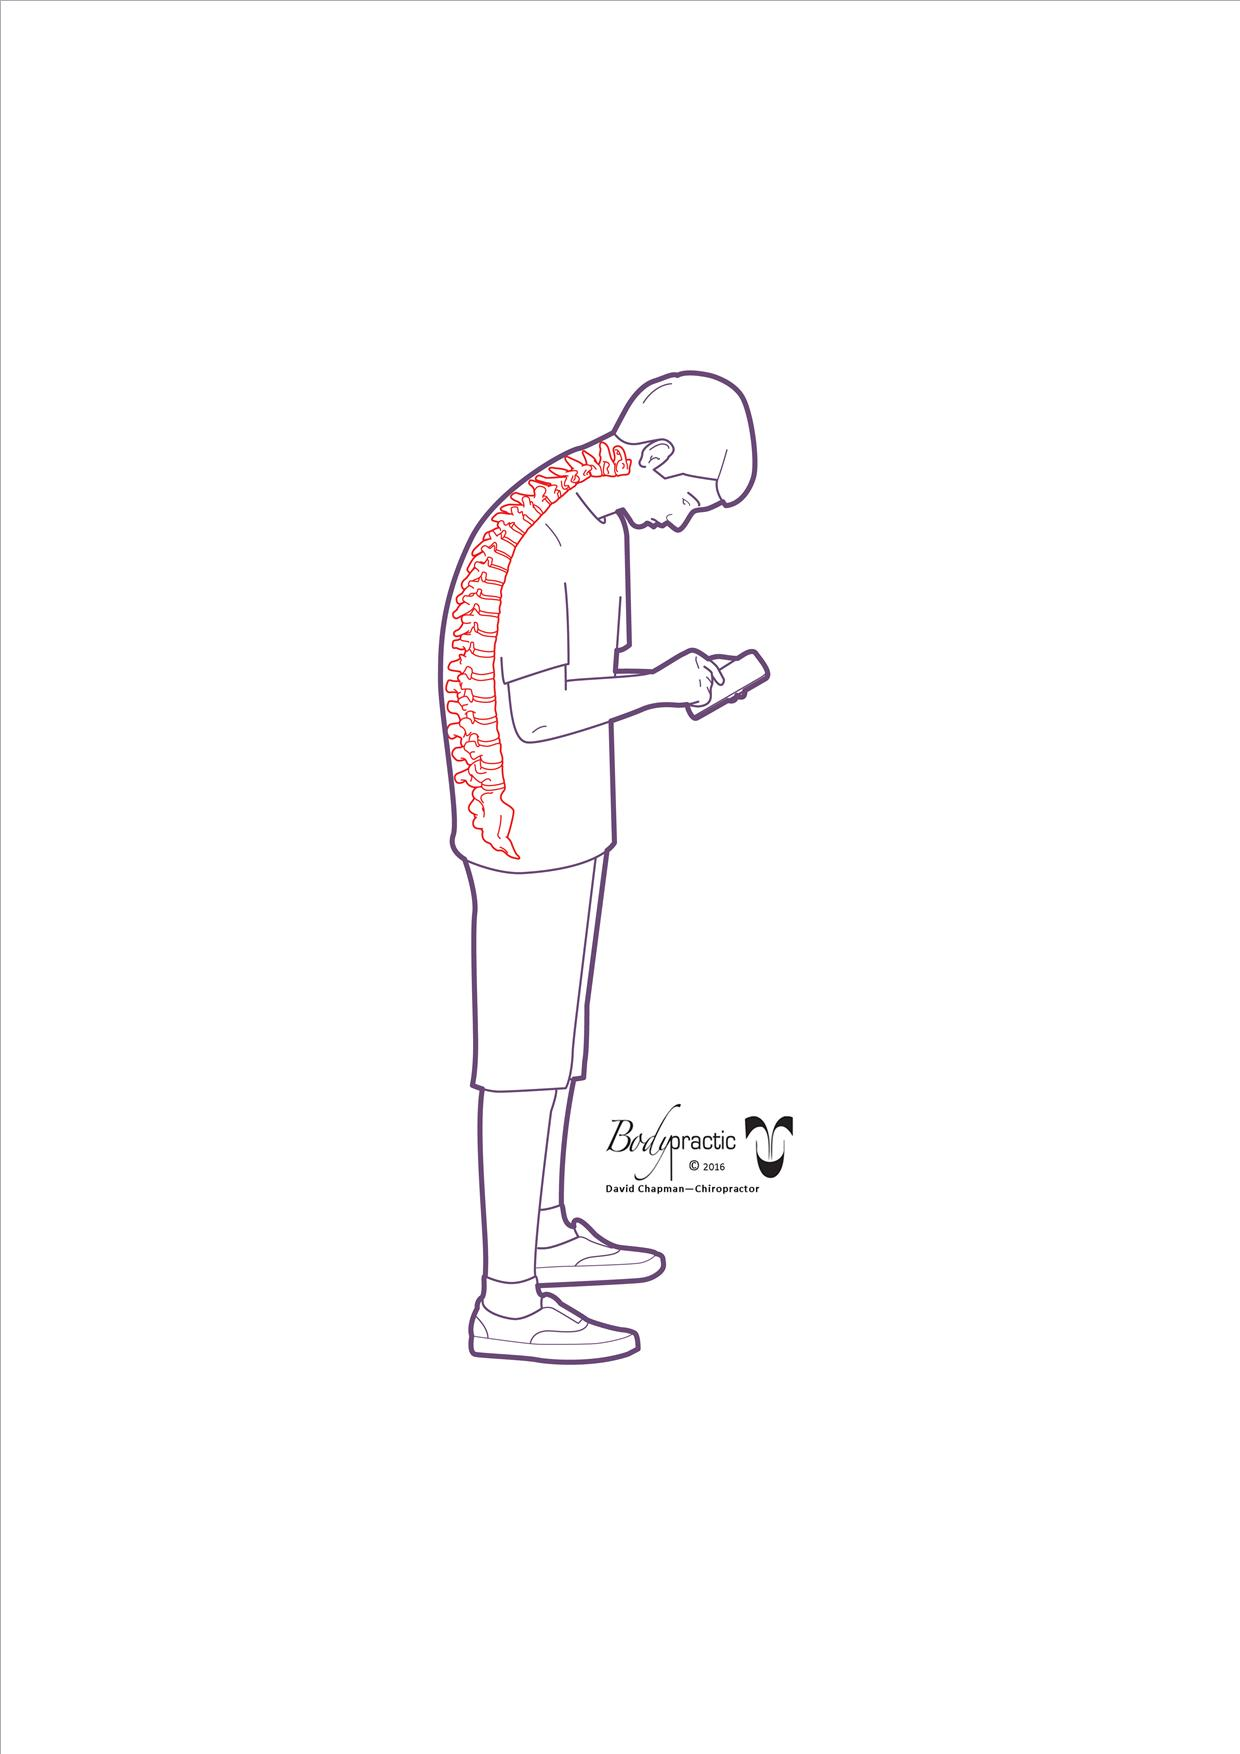 Poor posture whilst using your phone